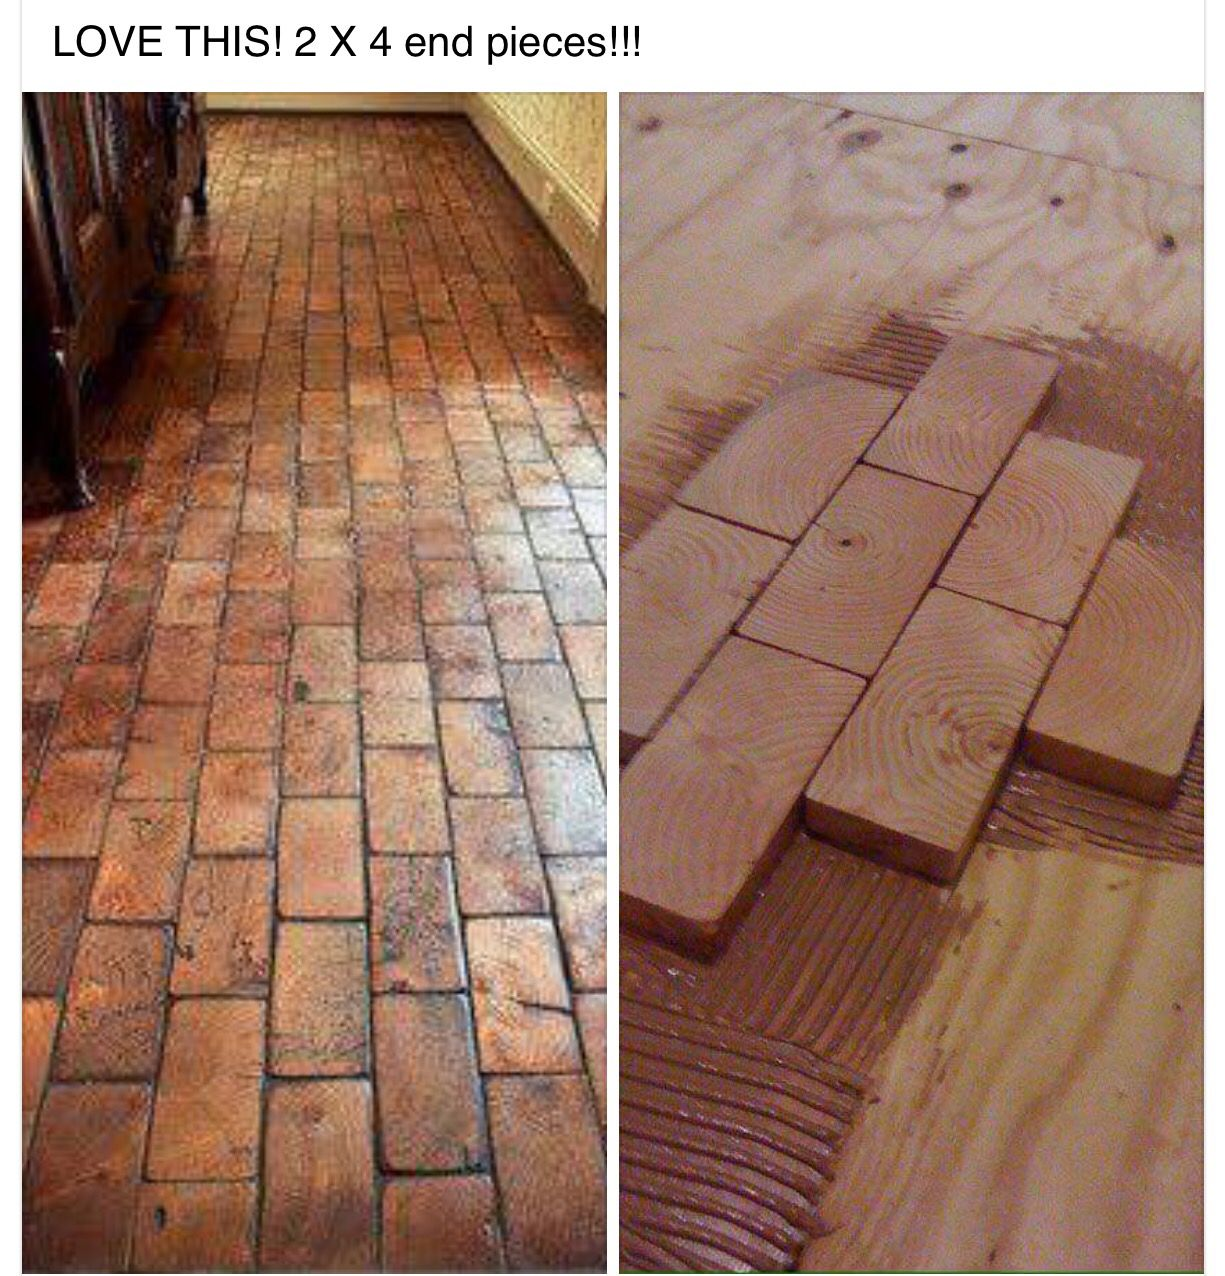 2x4 faux brick floor with wood blocks wooden blocks for fake 2x4 faux brick floor with wood blocks wooden blocks for fake brick flooring awesome diy dailygadgetfo Image collections